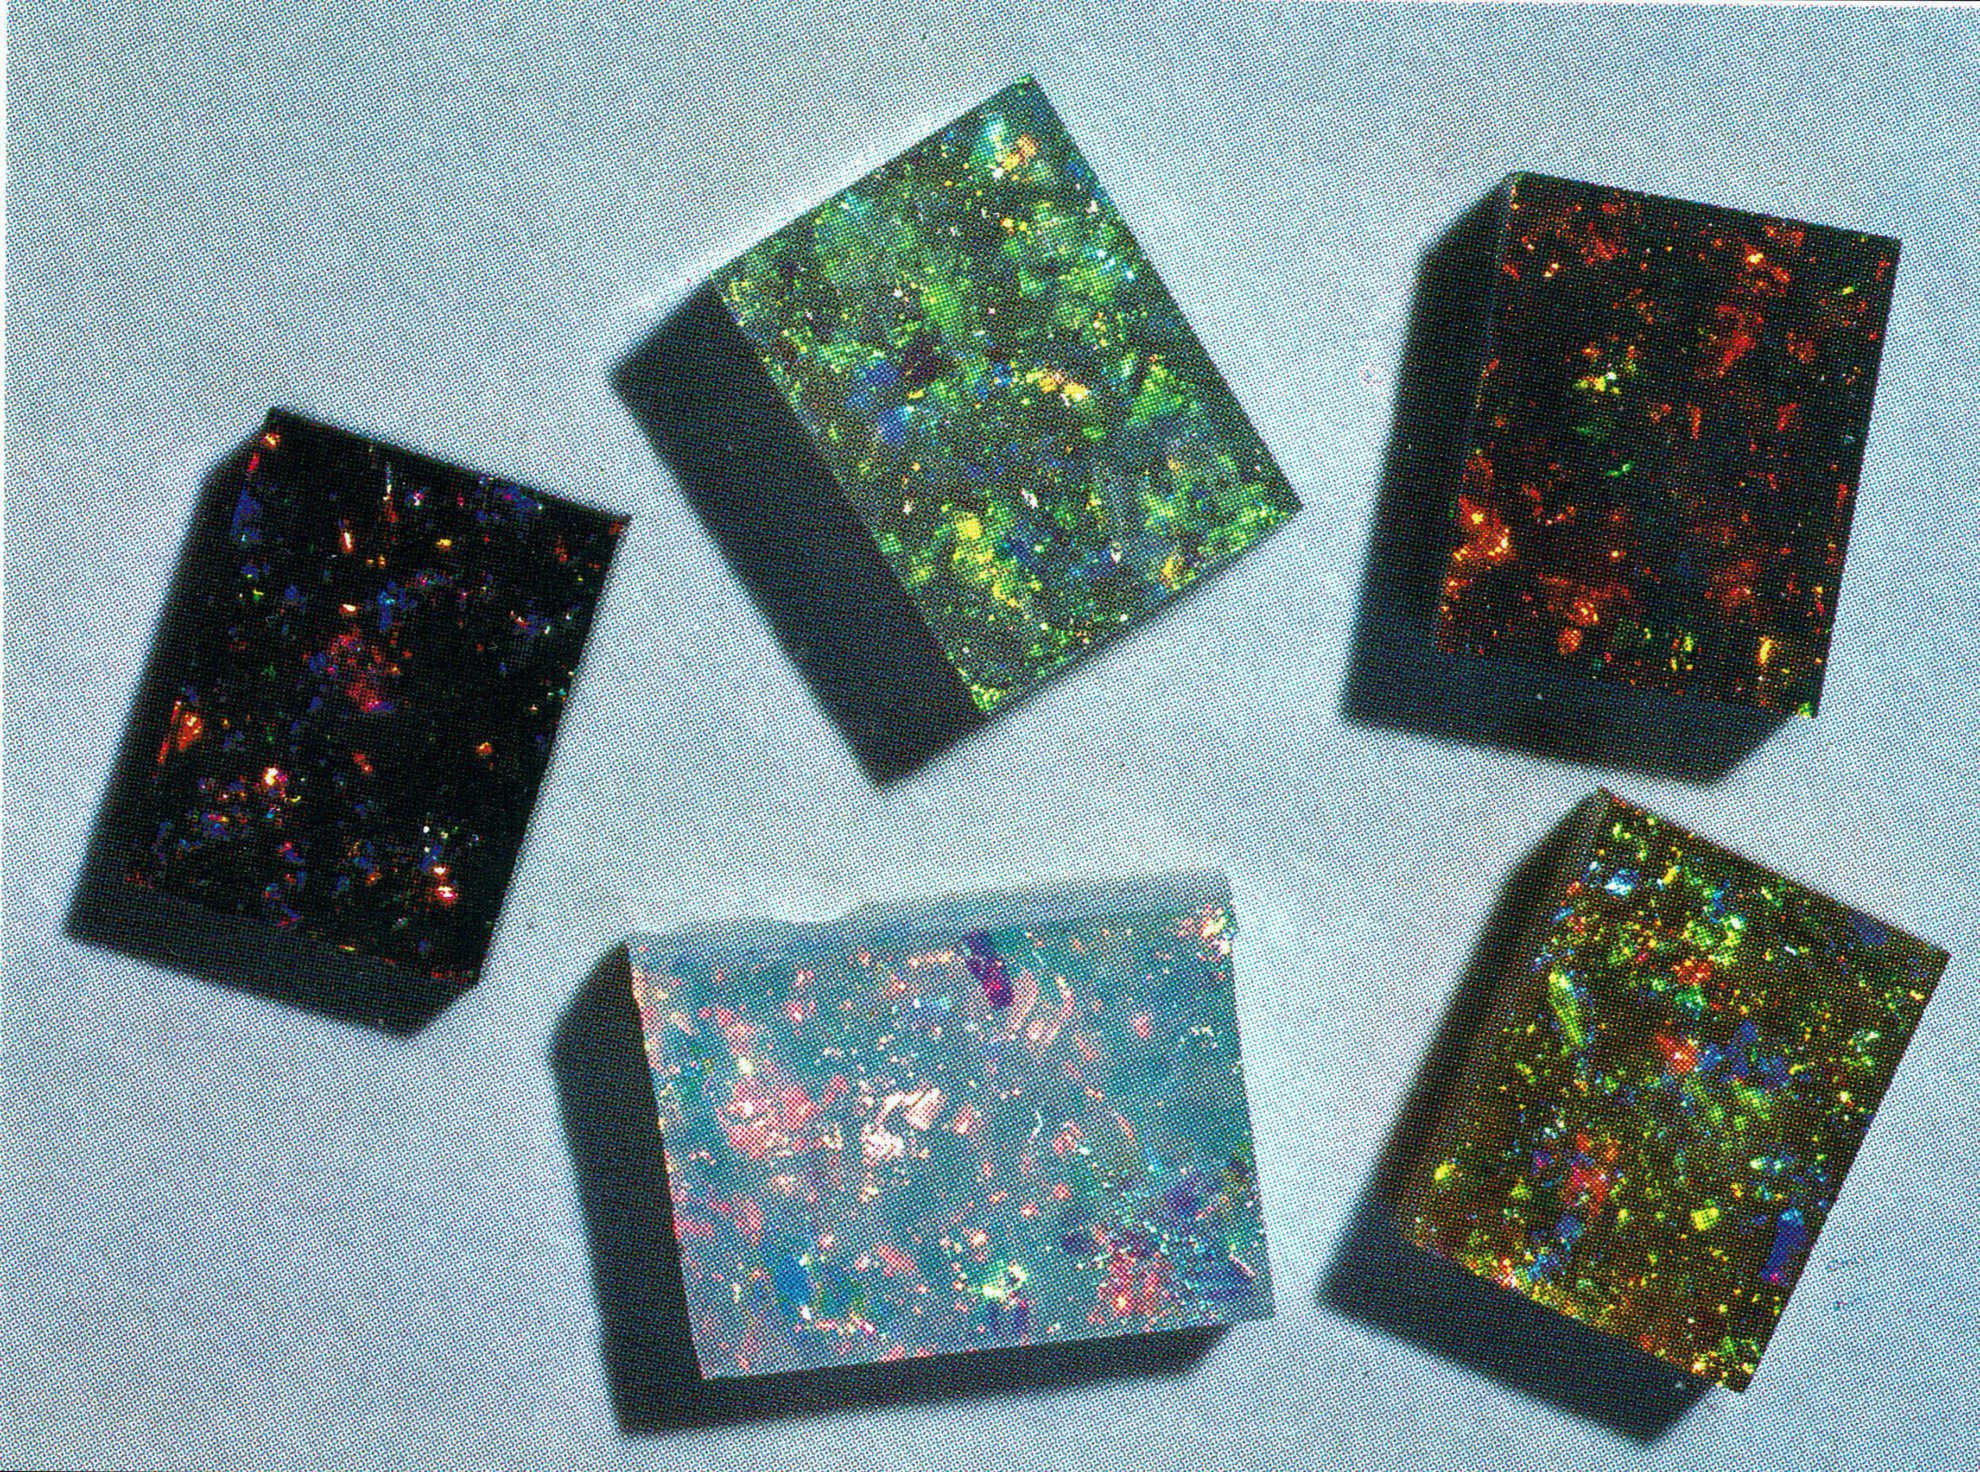 slocum stone - glass gemstones